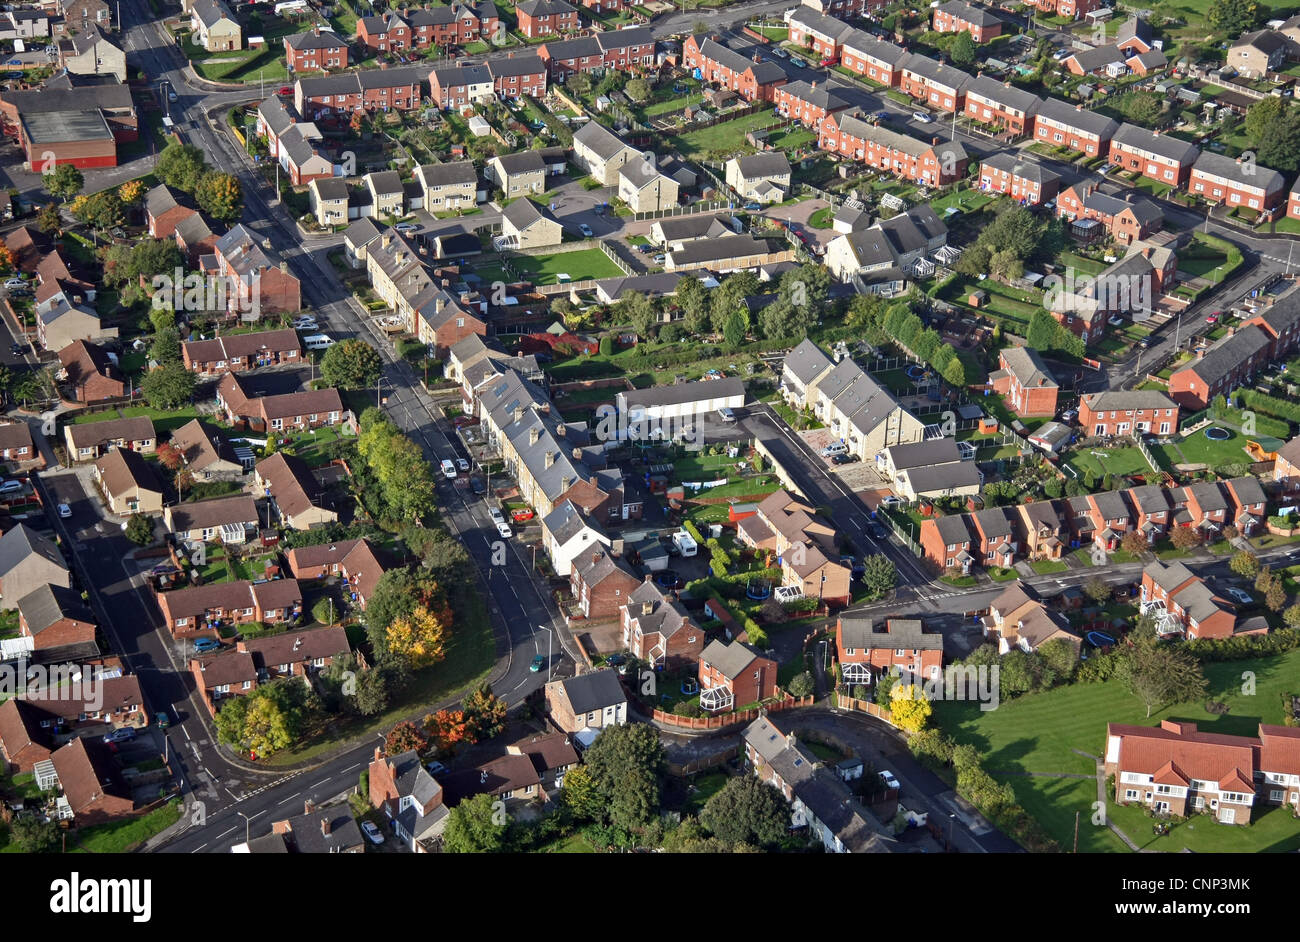 aerial view of affordable new homes built on a brown field site amongst existing older houses - Stock Image